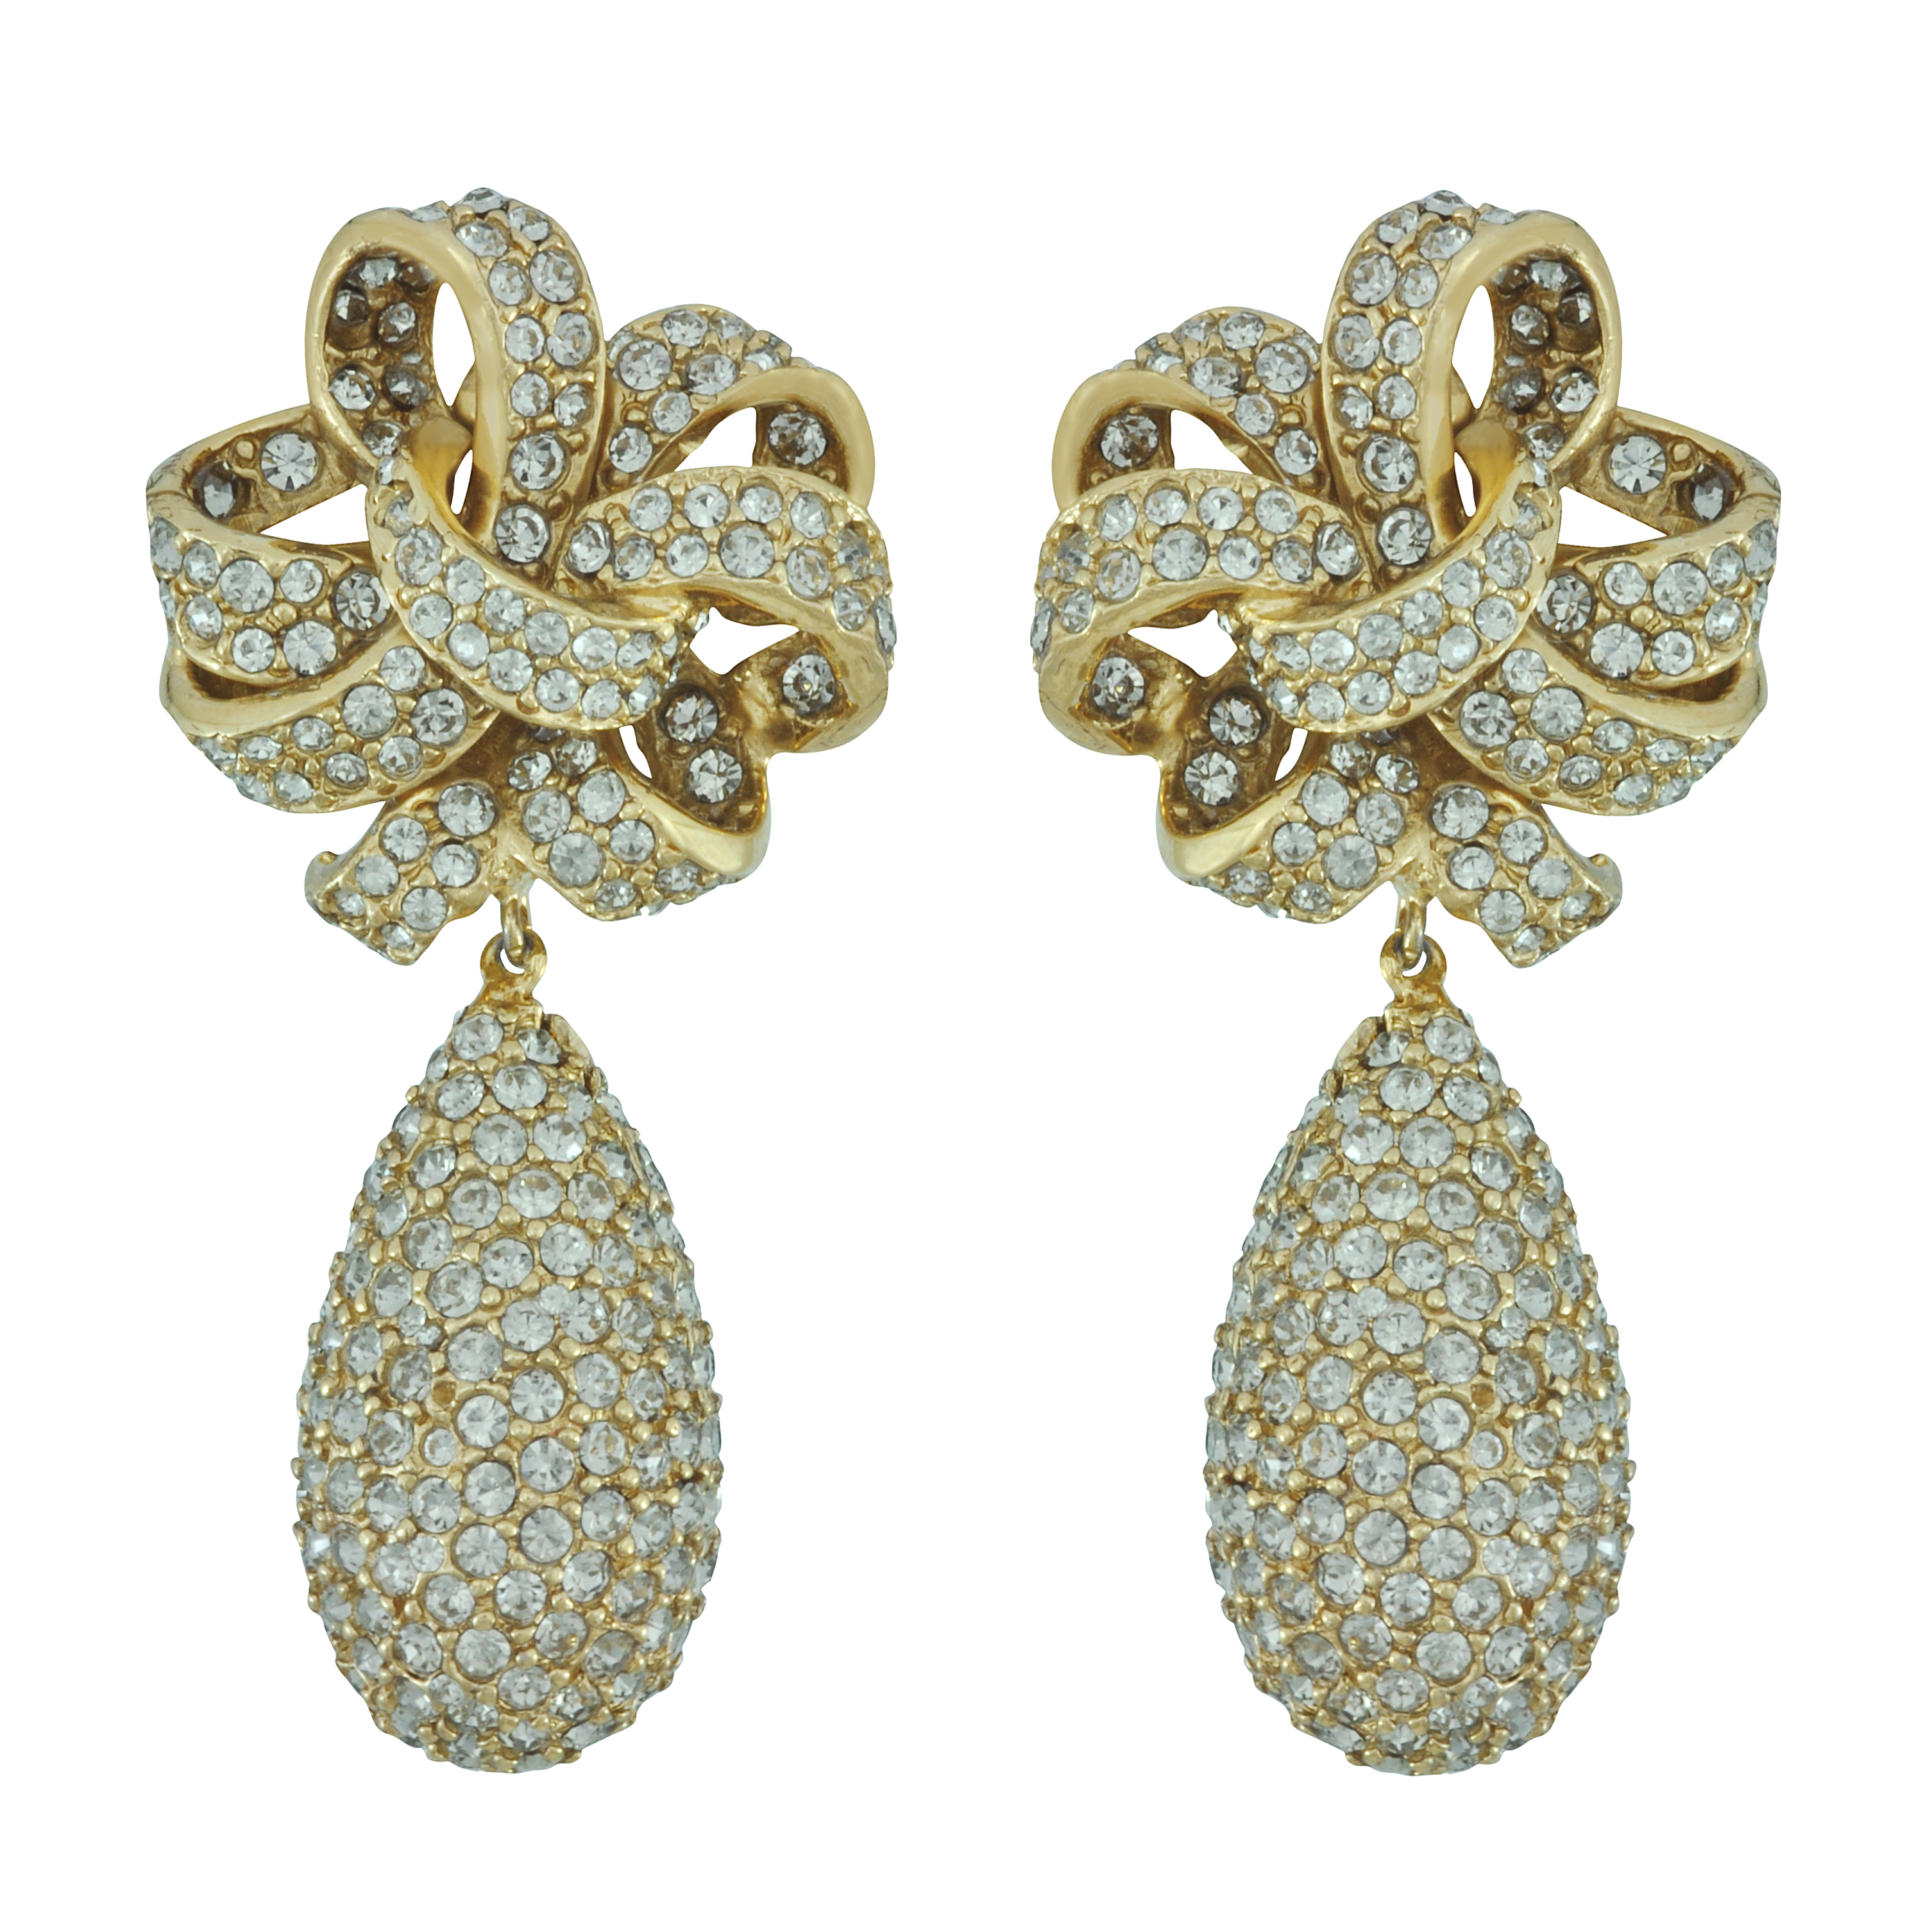 Ciner Elle Crystal Drop Earrings - Sophie's Closet